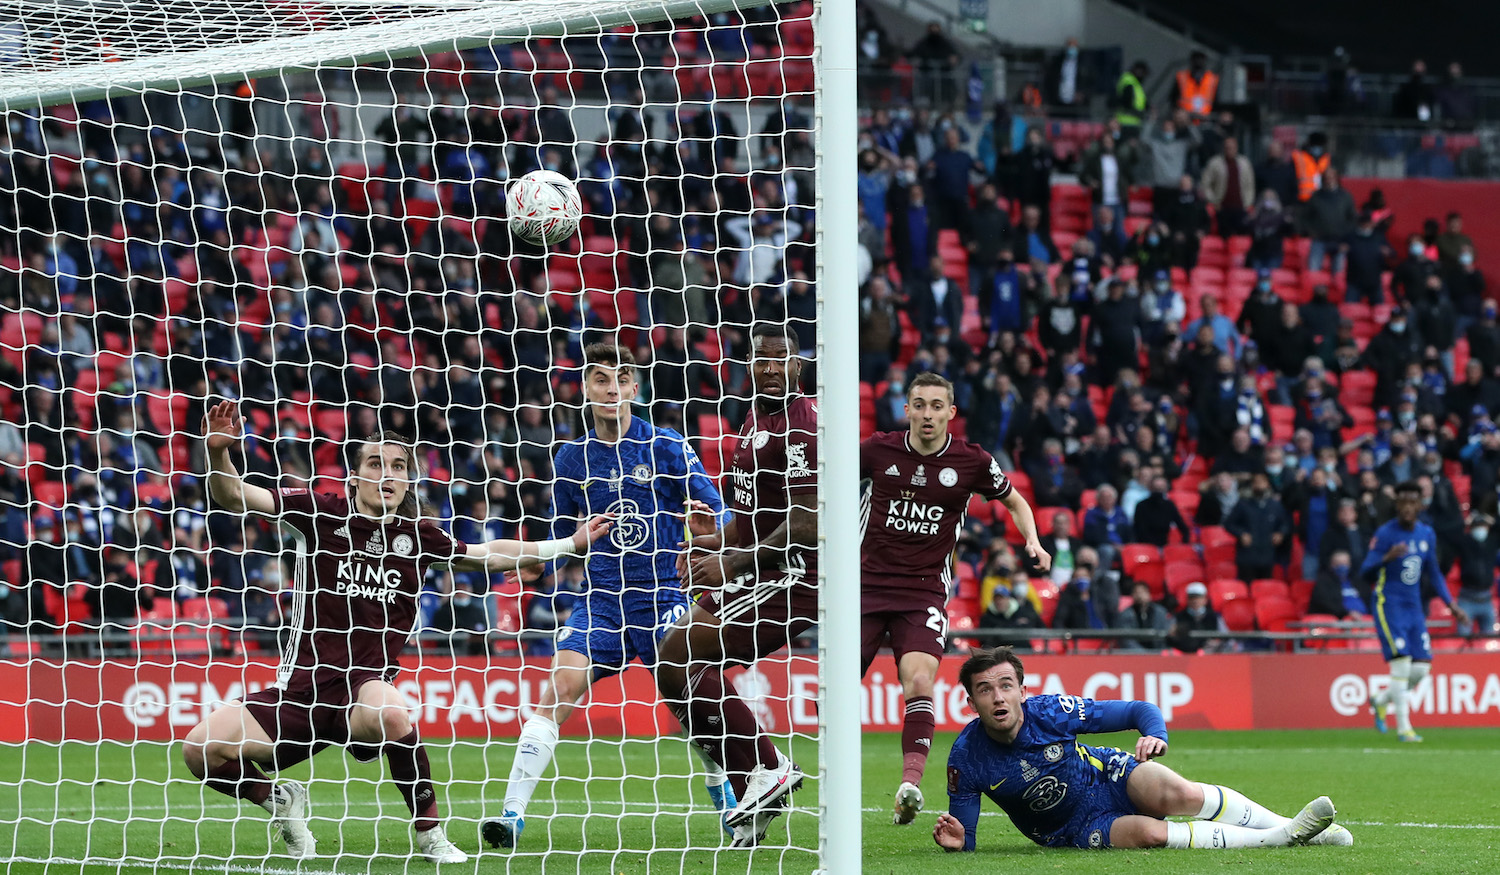 LONDON, ENGLAND - MAY 15: Ben Chilwell of Chelsea looks on after his effort is cleared by Caglar Soyuncu into Wes Morgan of Leicester City resulting in a goal that was later ruled out by VAR for offside during The Emirates FA Cup Final match between Chelsea and Leicester City at Wembley Stadium on May 15, 2021 in London, England. A limited number of around 21,000 fans, subject to a negative lateral flow test, will be allowed inside Wembley Stadium to watch this year's FA Cup Final as part of a pilot event to trial the return of large crowds to UK venues. (Photo by Nick Potts - Pool/Getty Images)